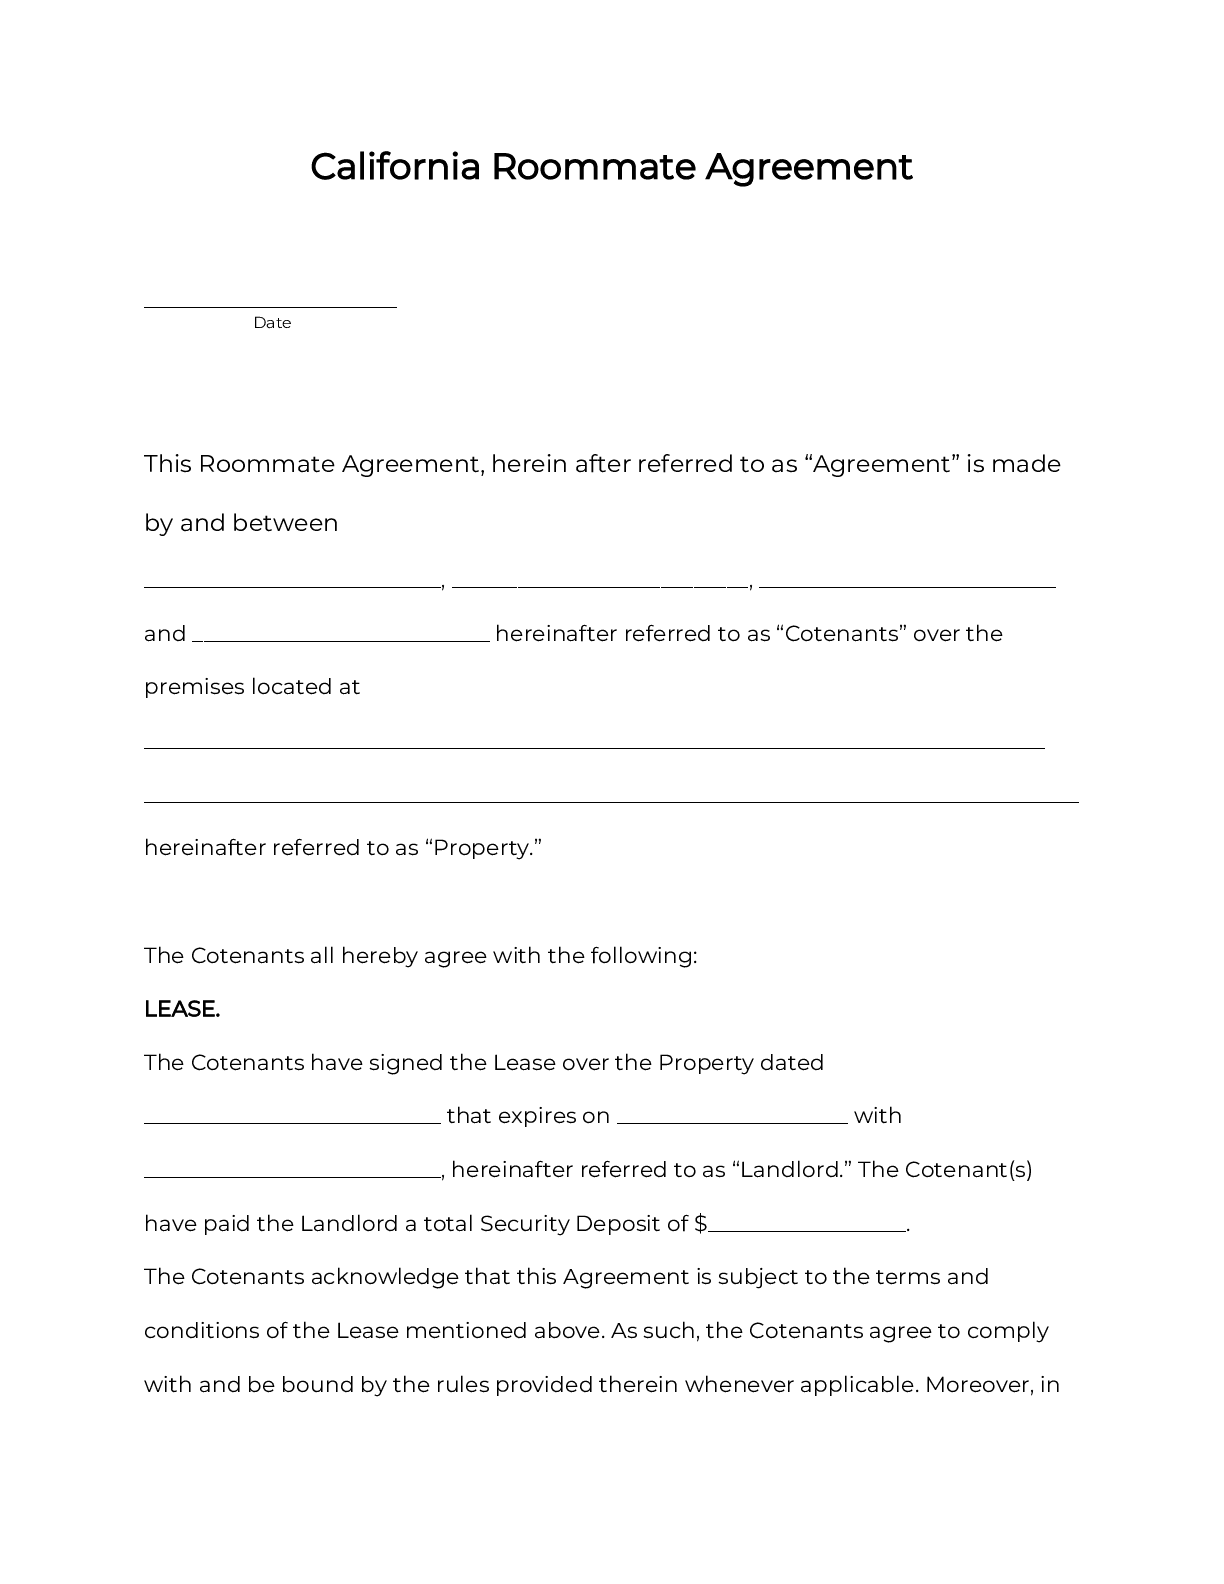 Master operating lease agreement example. Official California Room Rental Agreement Roommate Form 2021 Pdf